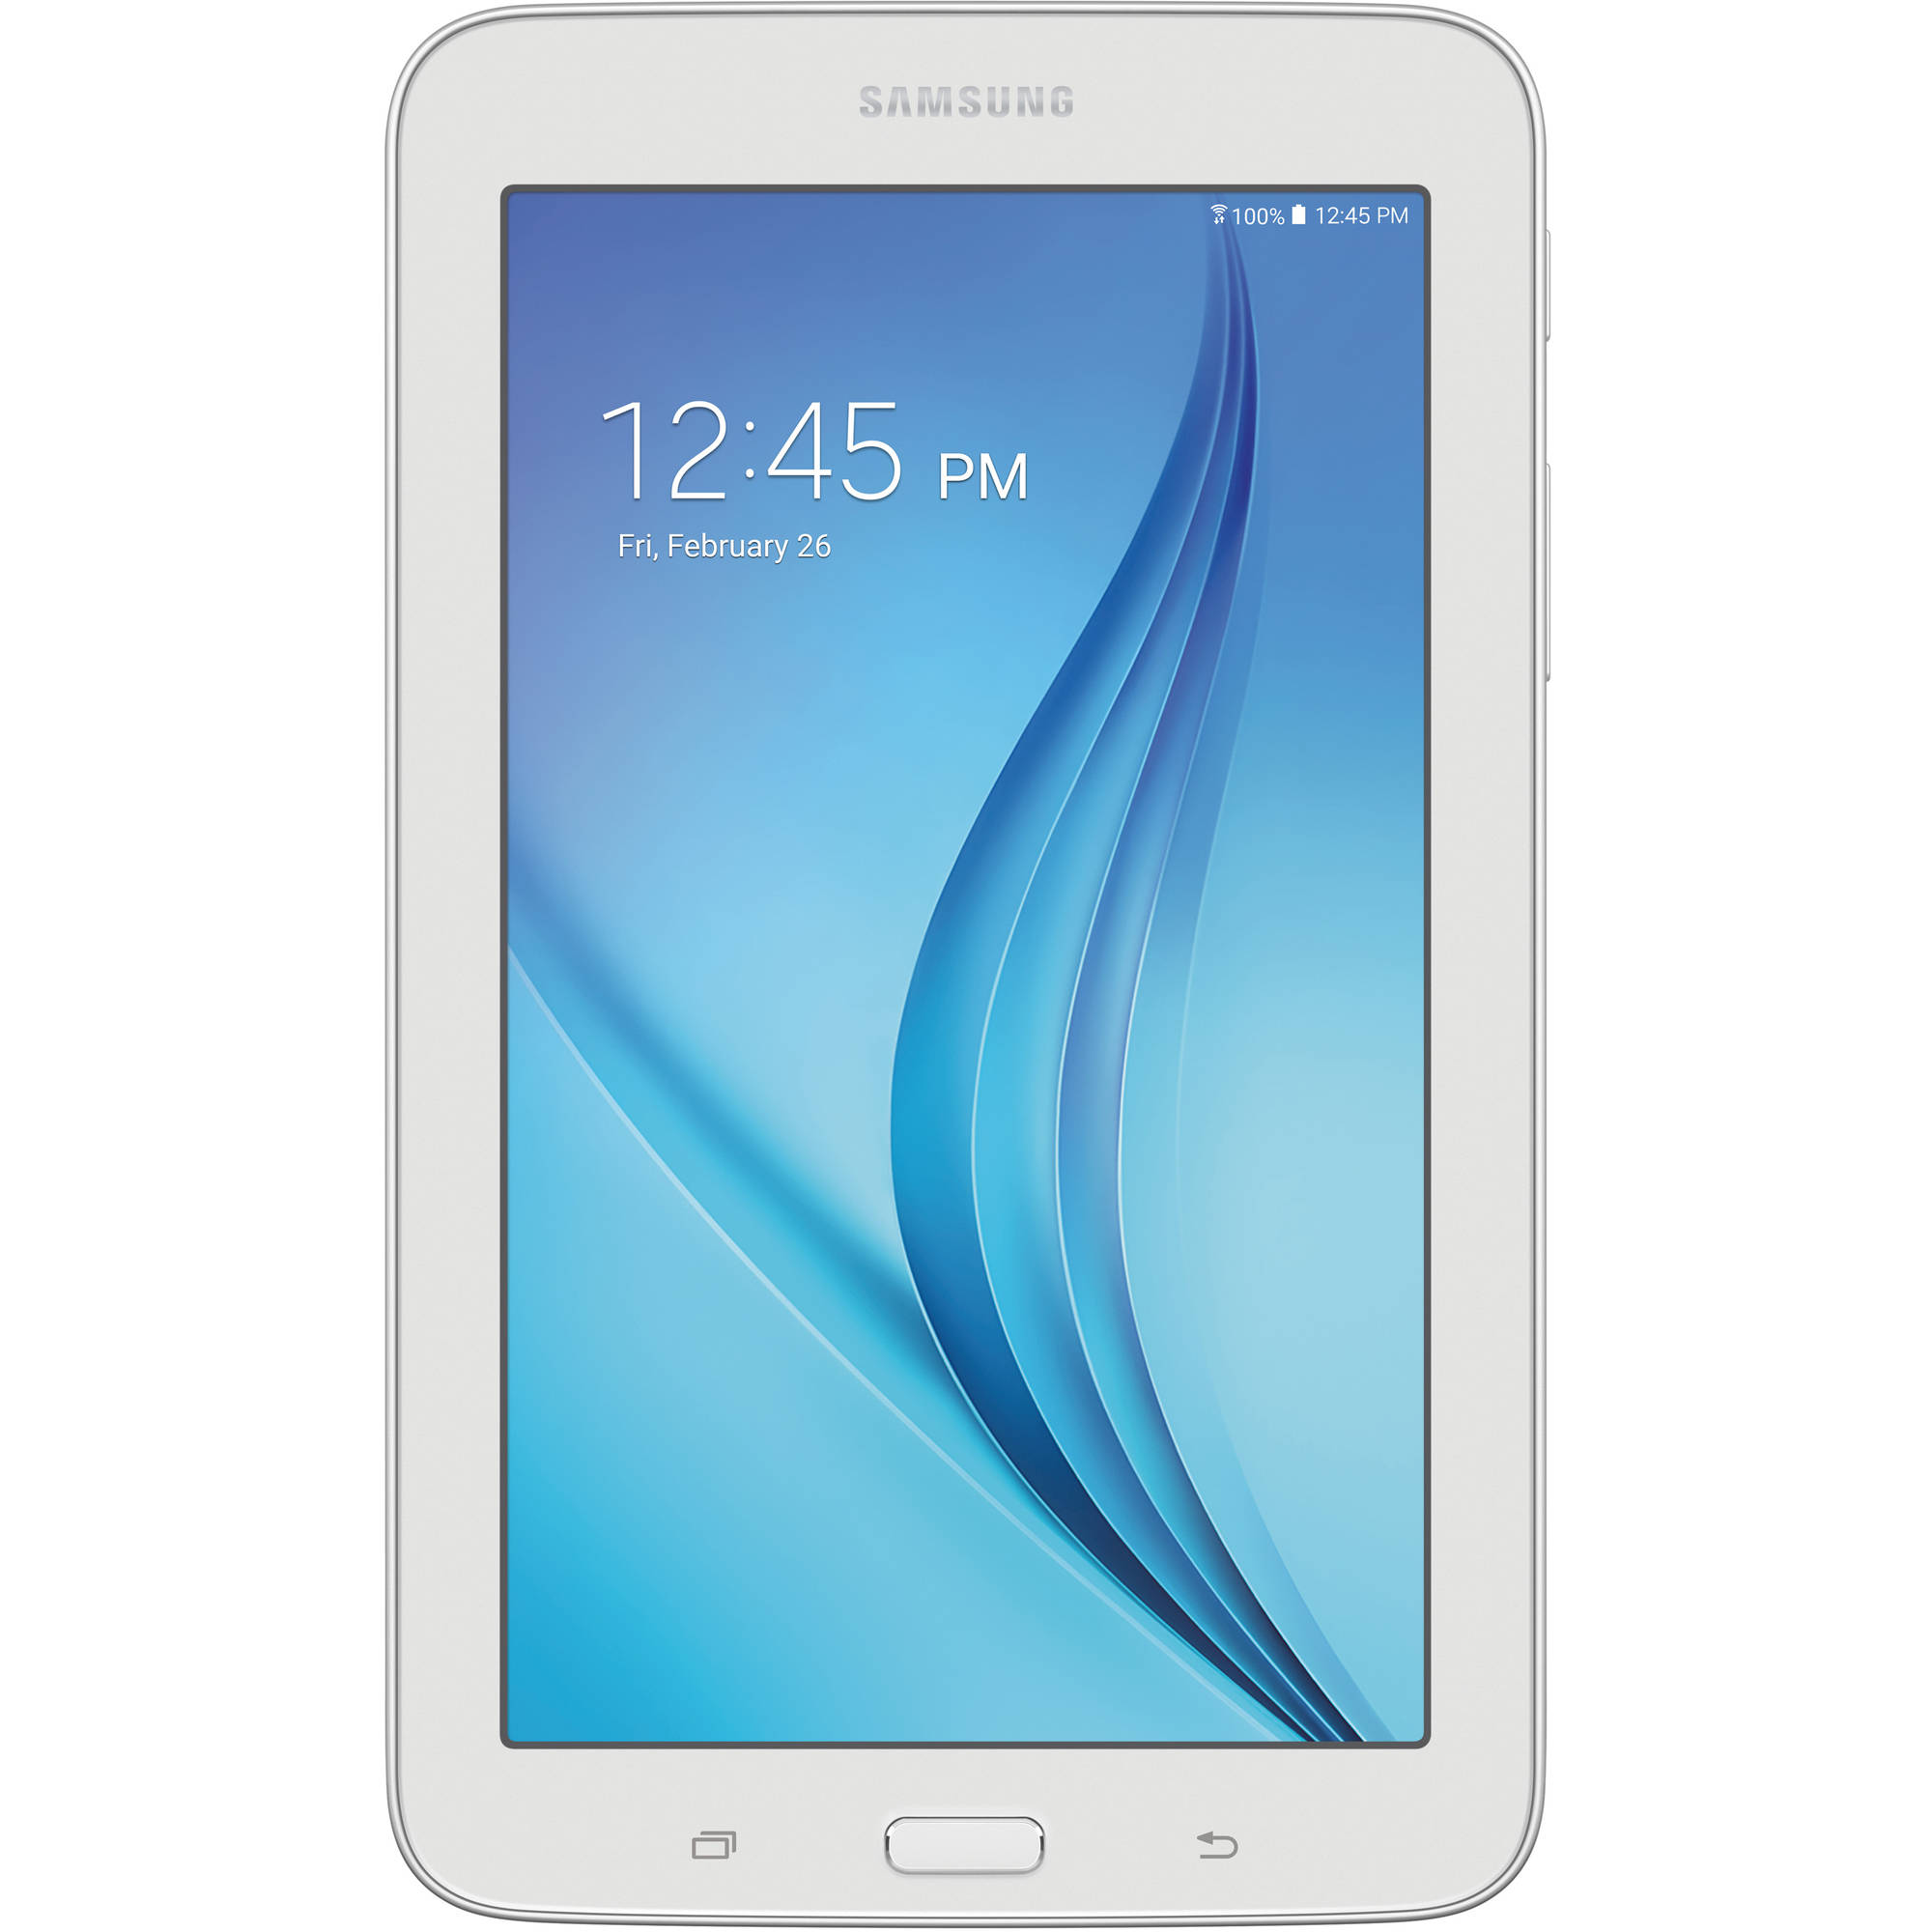 "Samsung Galaxy Tab E Lite with WiFi 7.0"" Touchscreen Tablet PC Featuring Android 4.4 (KitKat) Operating System"